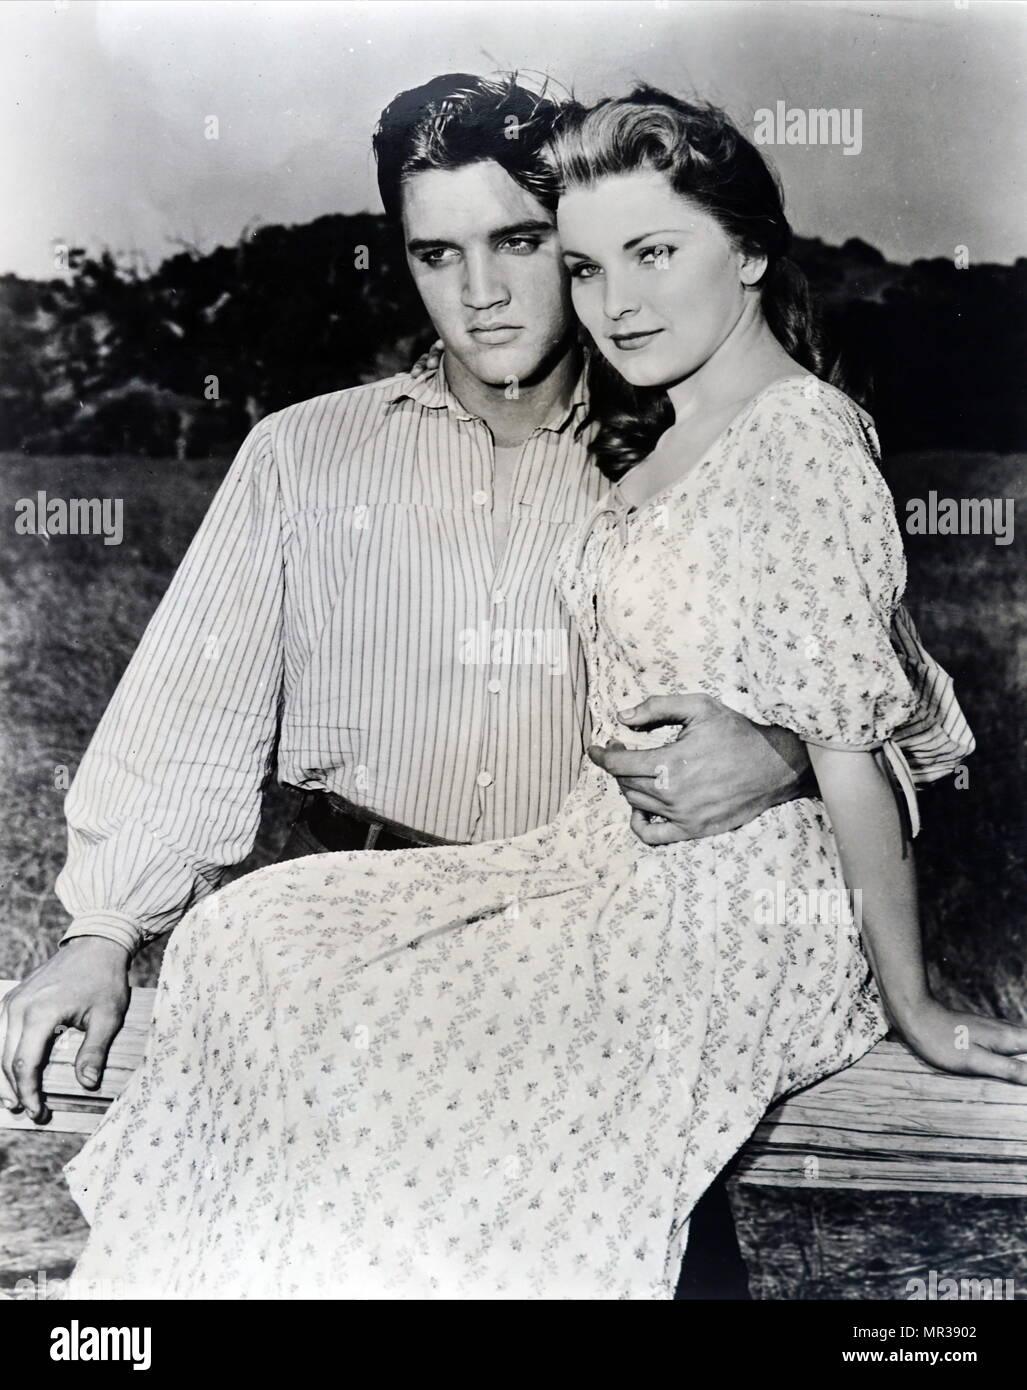 Elvis And Priscilla Presley High Resolution Stock Photography And